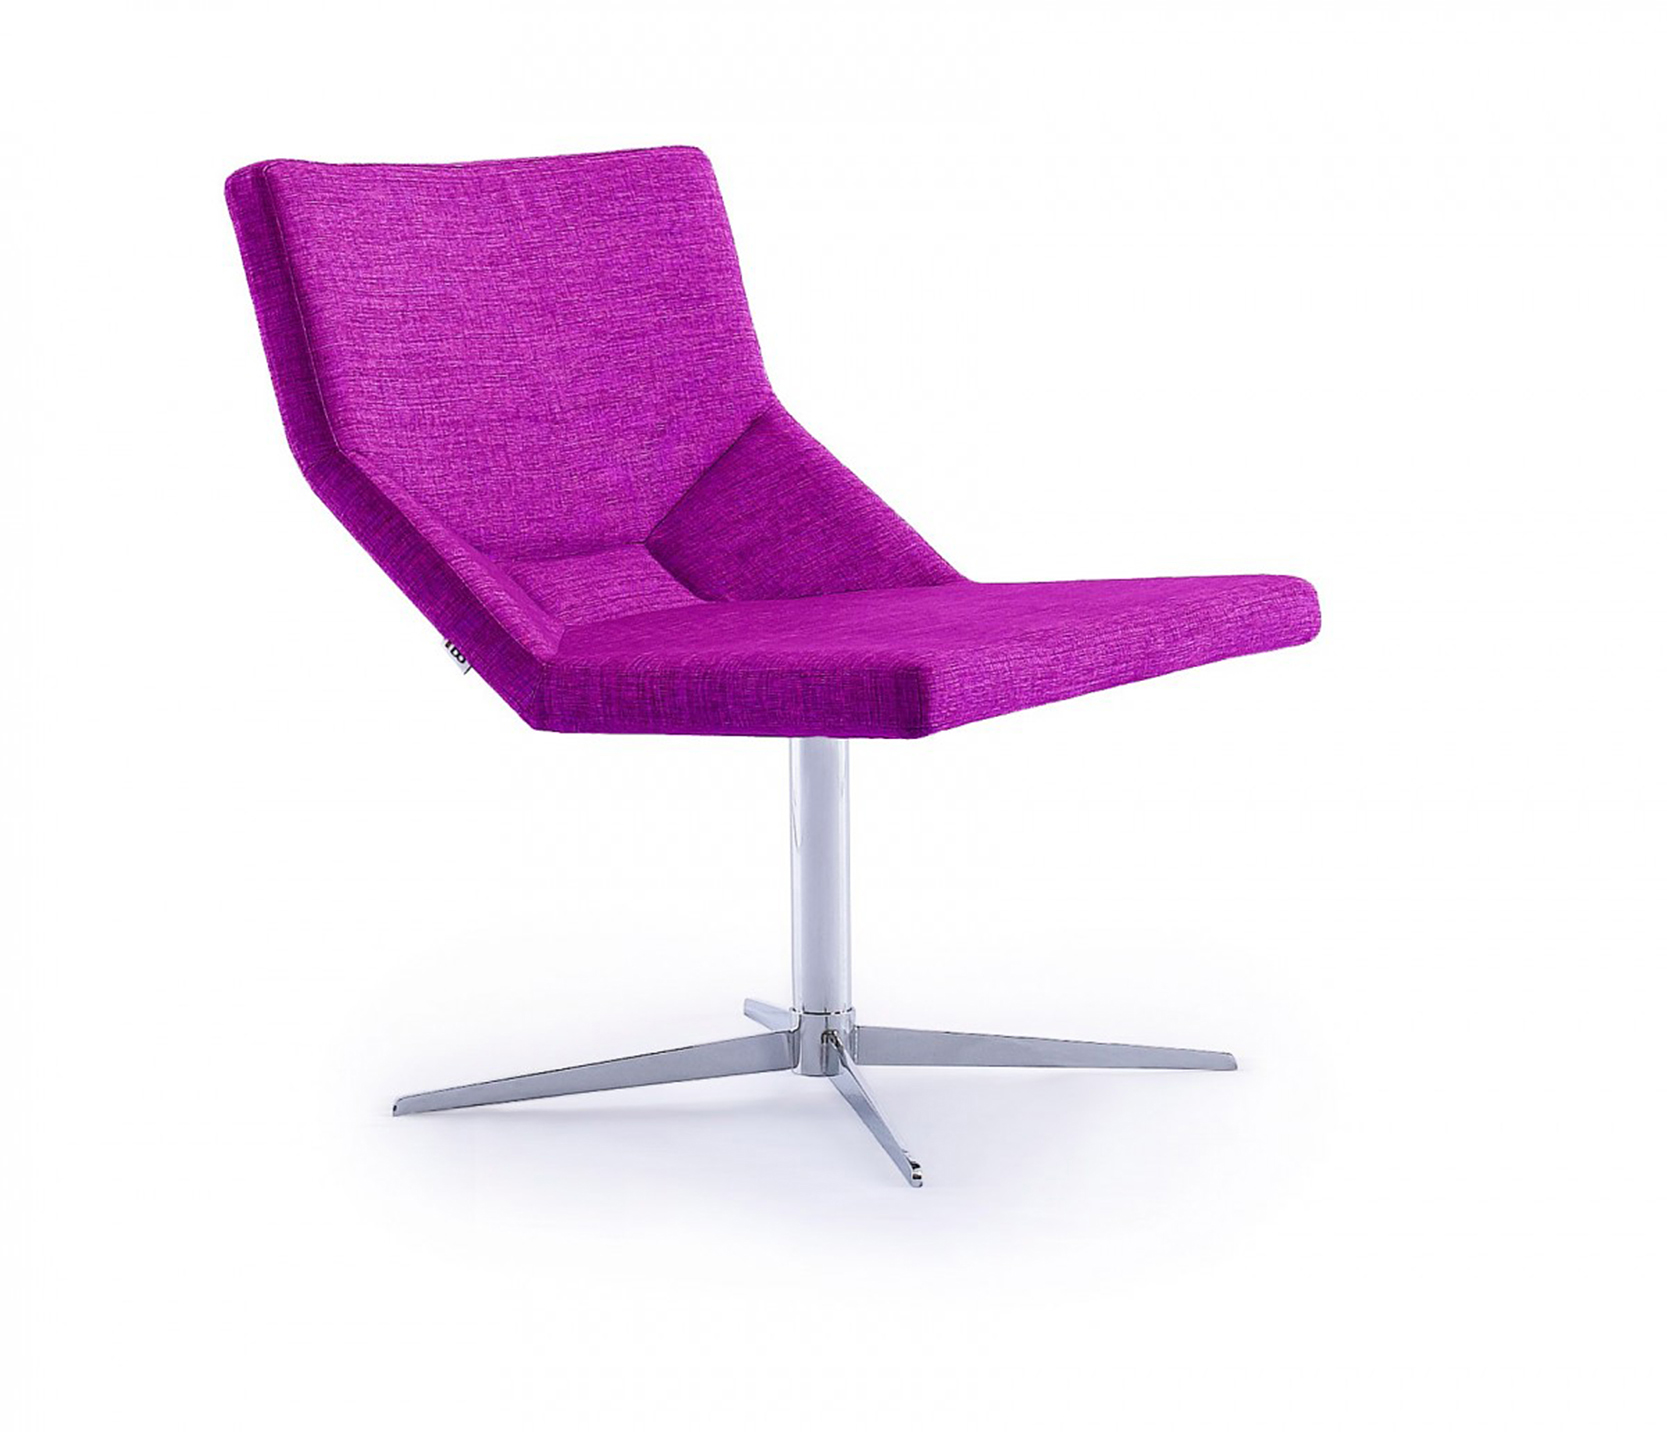 Find the perfect chair for your living room with the Bellissa Indoor Lounge Chair In Magenta